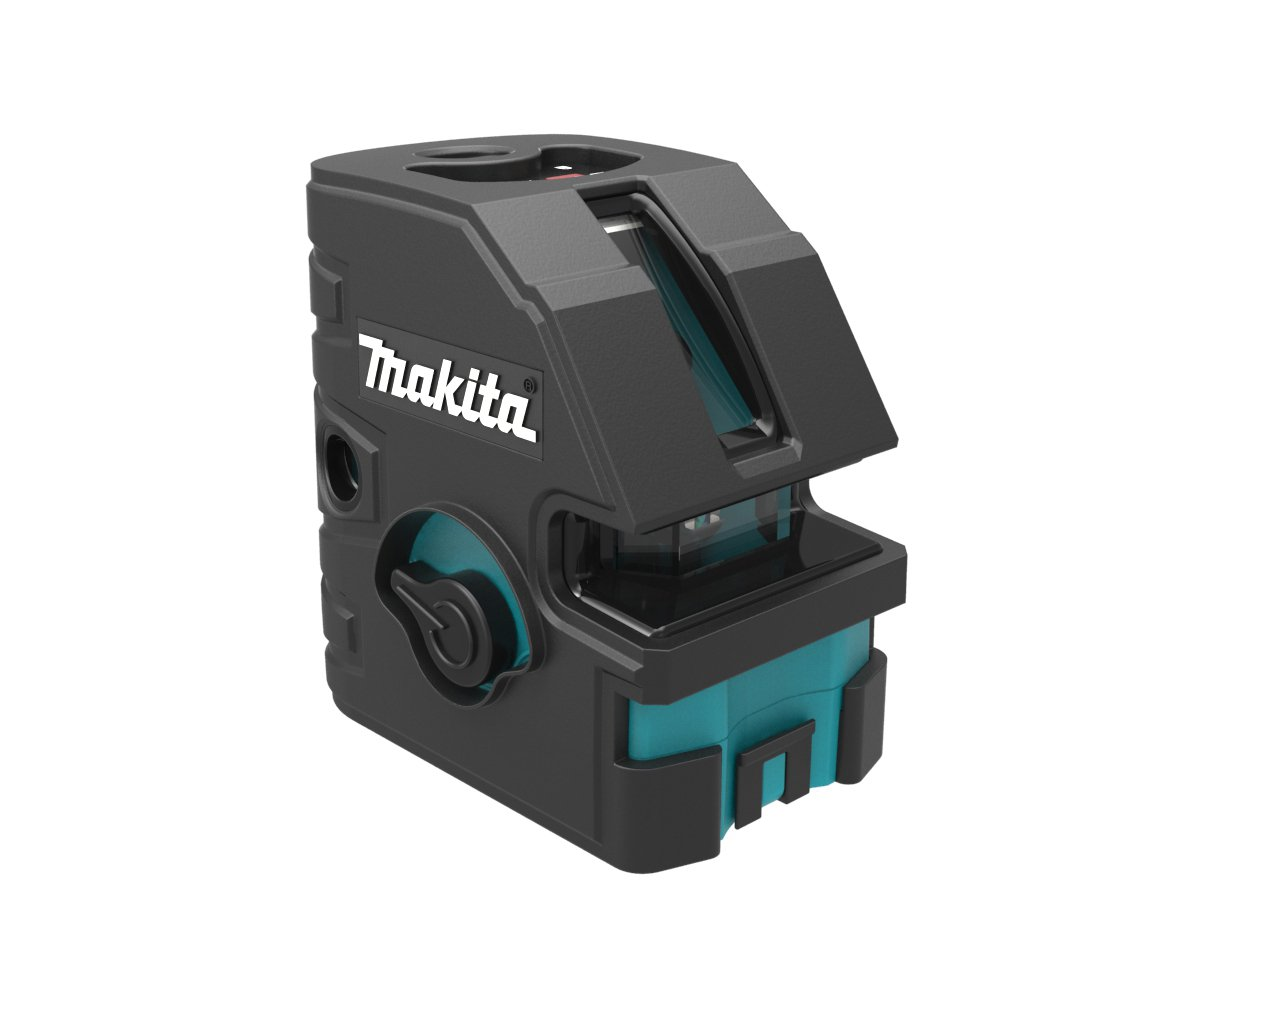 makita sk104z self-leveling horizontal/vertical cross-line laser - 61M4drRE4QL - Makita SK104Z Self-Leveling Horizontal/Vertical Cross-Line Laser